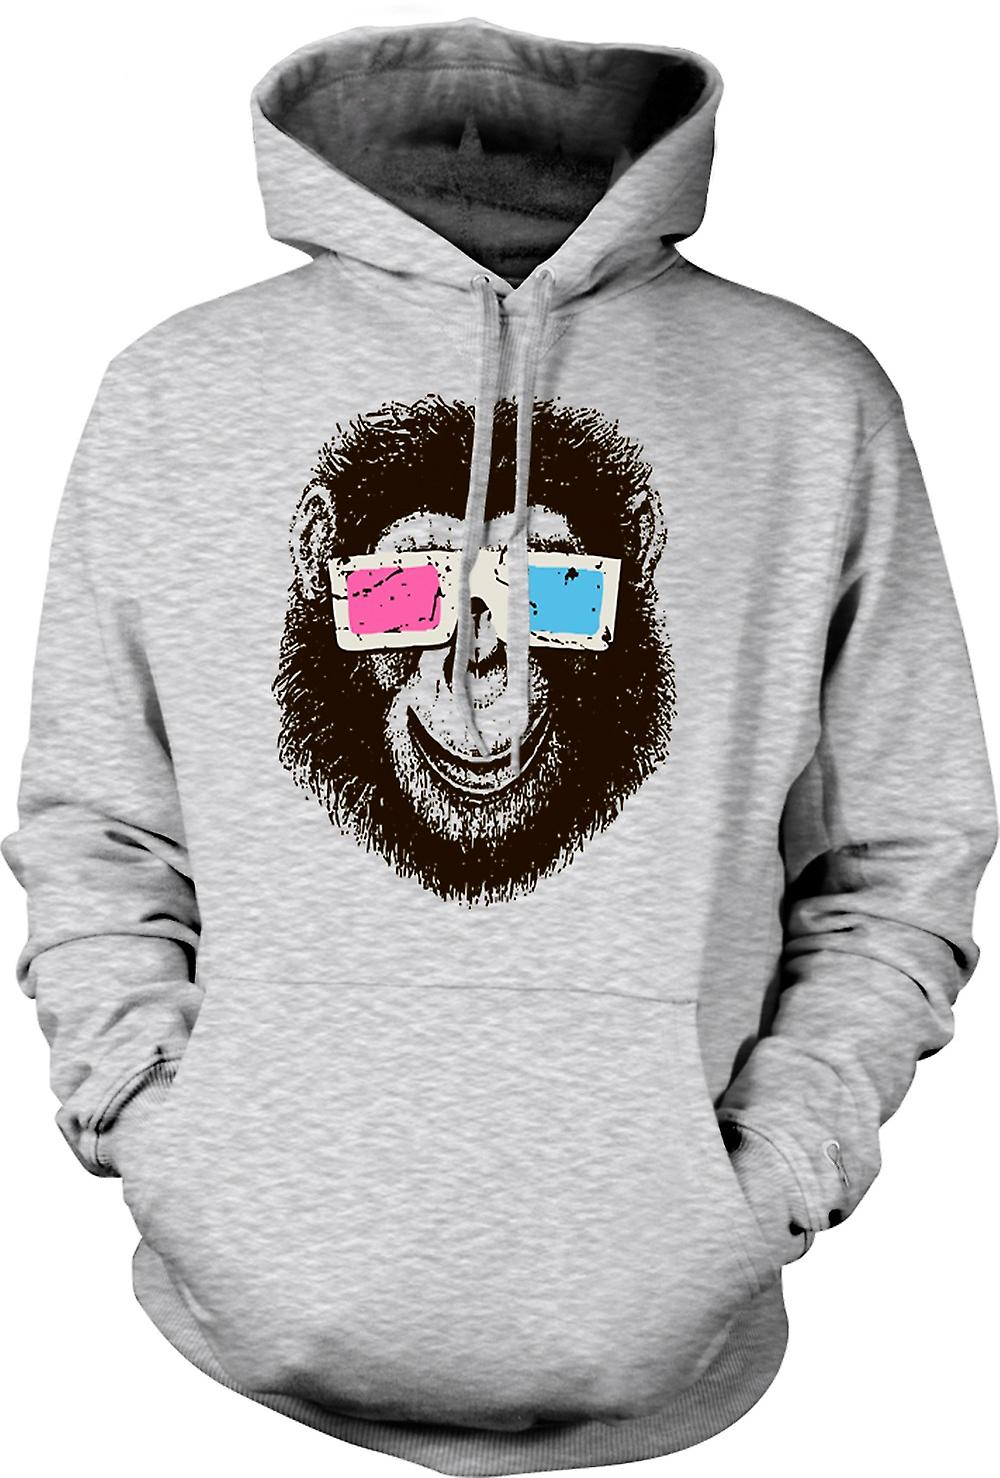 Mens Hoodie - Monkey Ape 3D Glasses - Cool Graphic Design